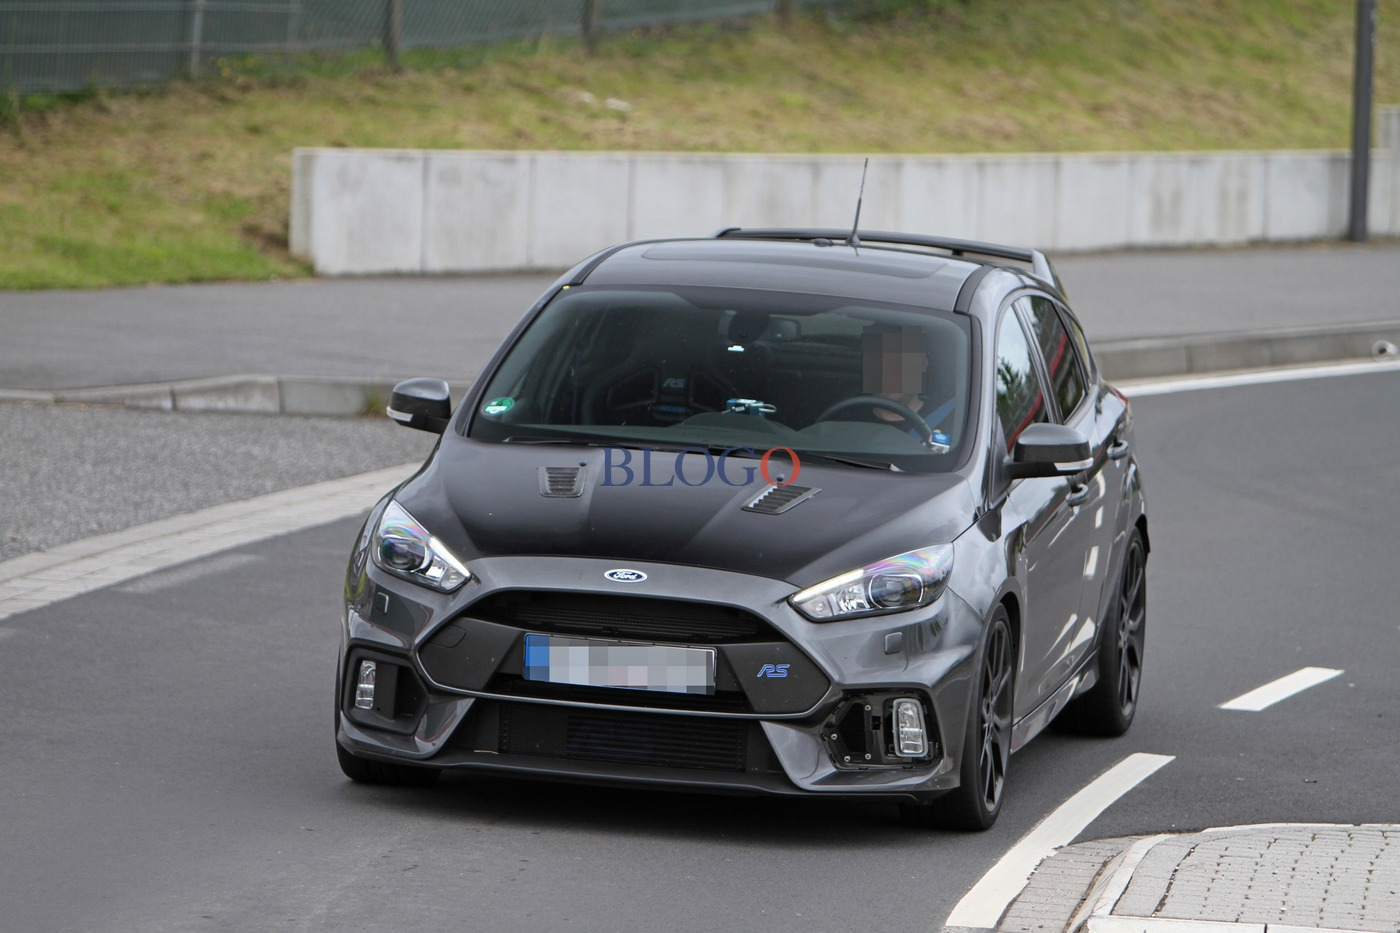 foto spia ford focus rs500. Black Bedroom Furniture Sets. Home Design Ideas